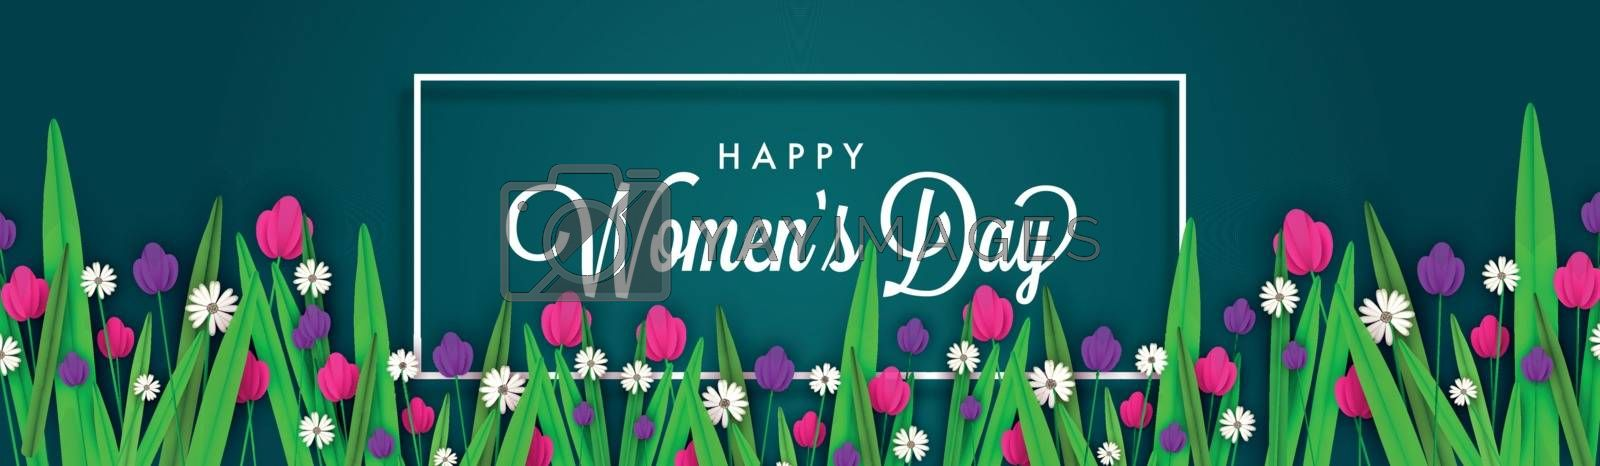 Website banner or header design decorated with colorful flowers on green background for Happy Women's Day celebration.